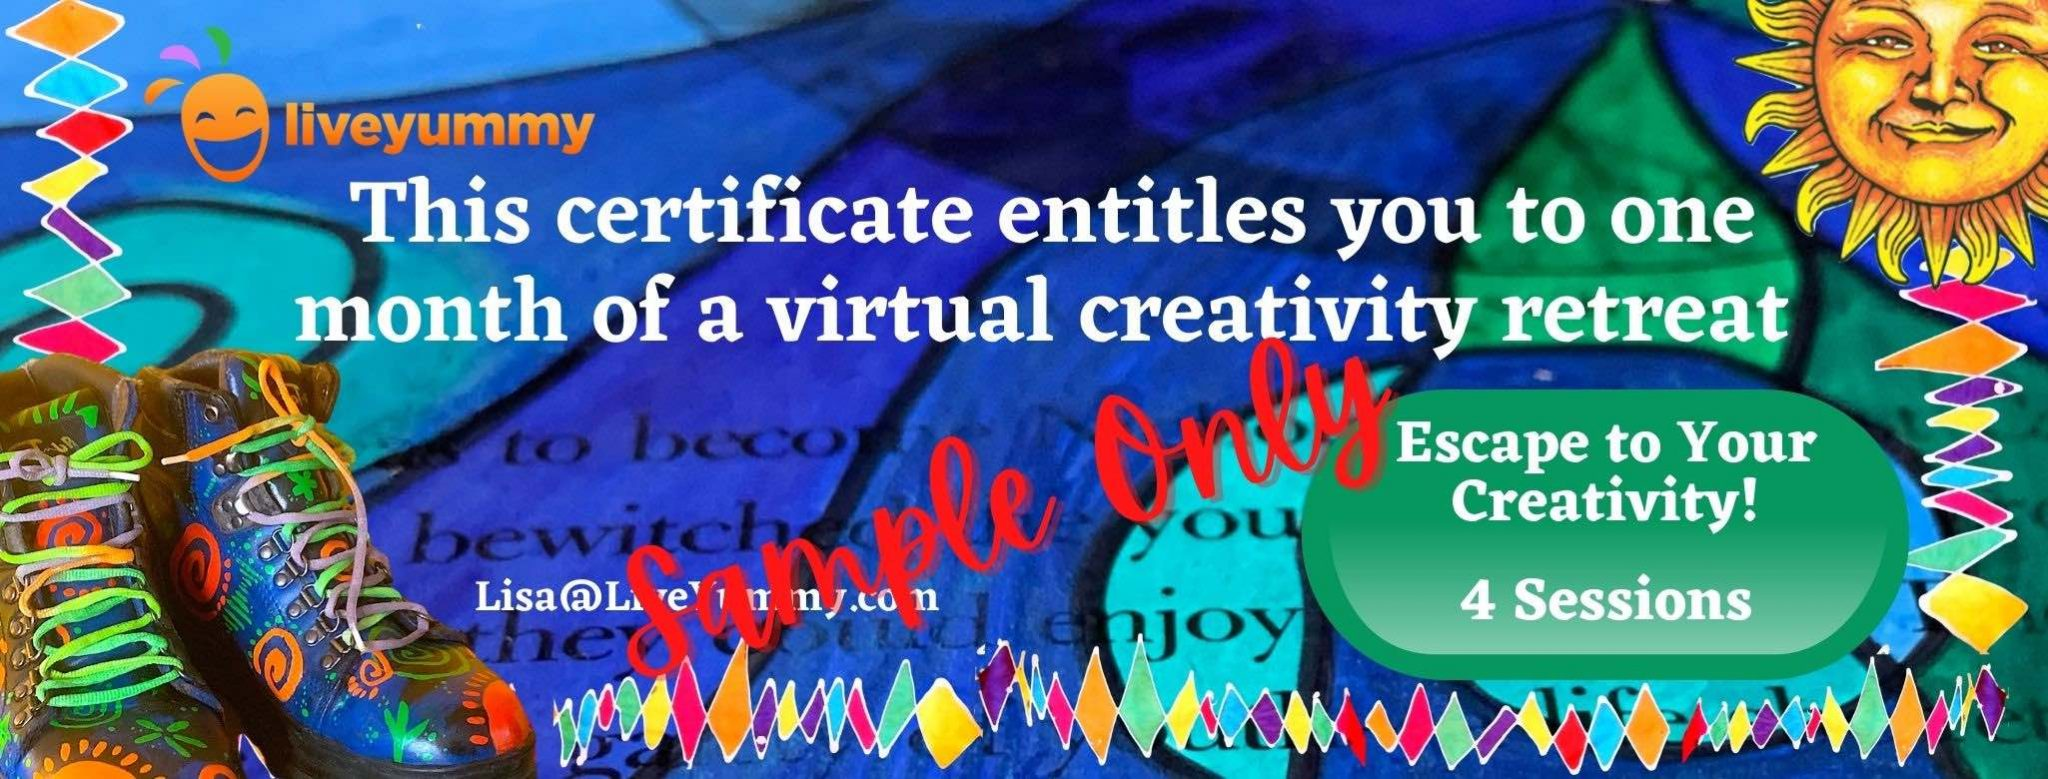 Escape to Your Creativity Certificate Z Seekers Live Yummy